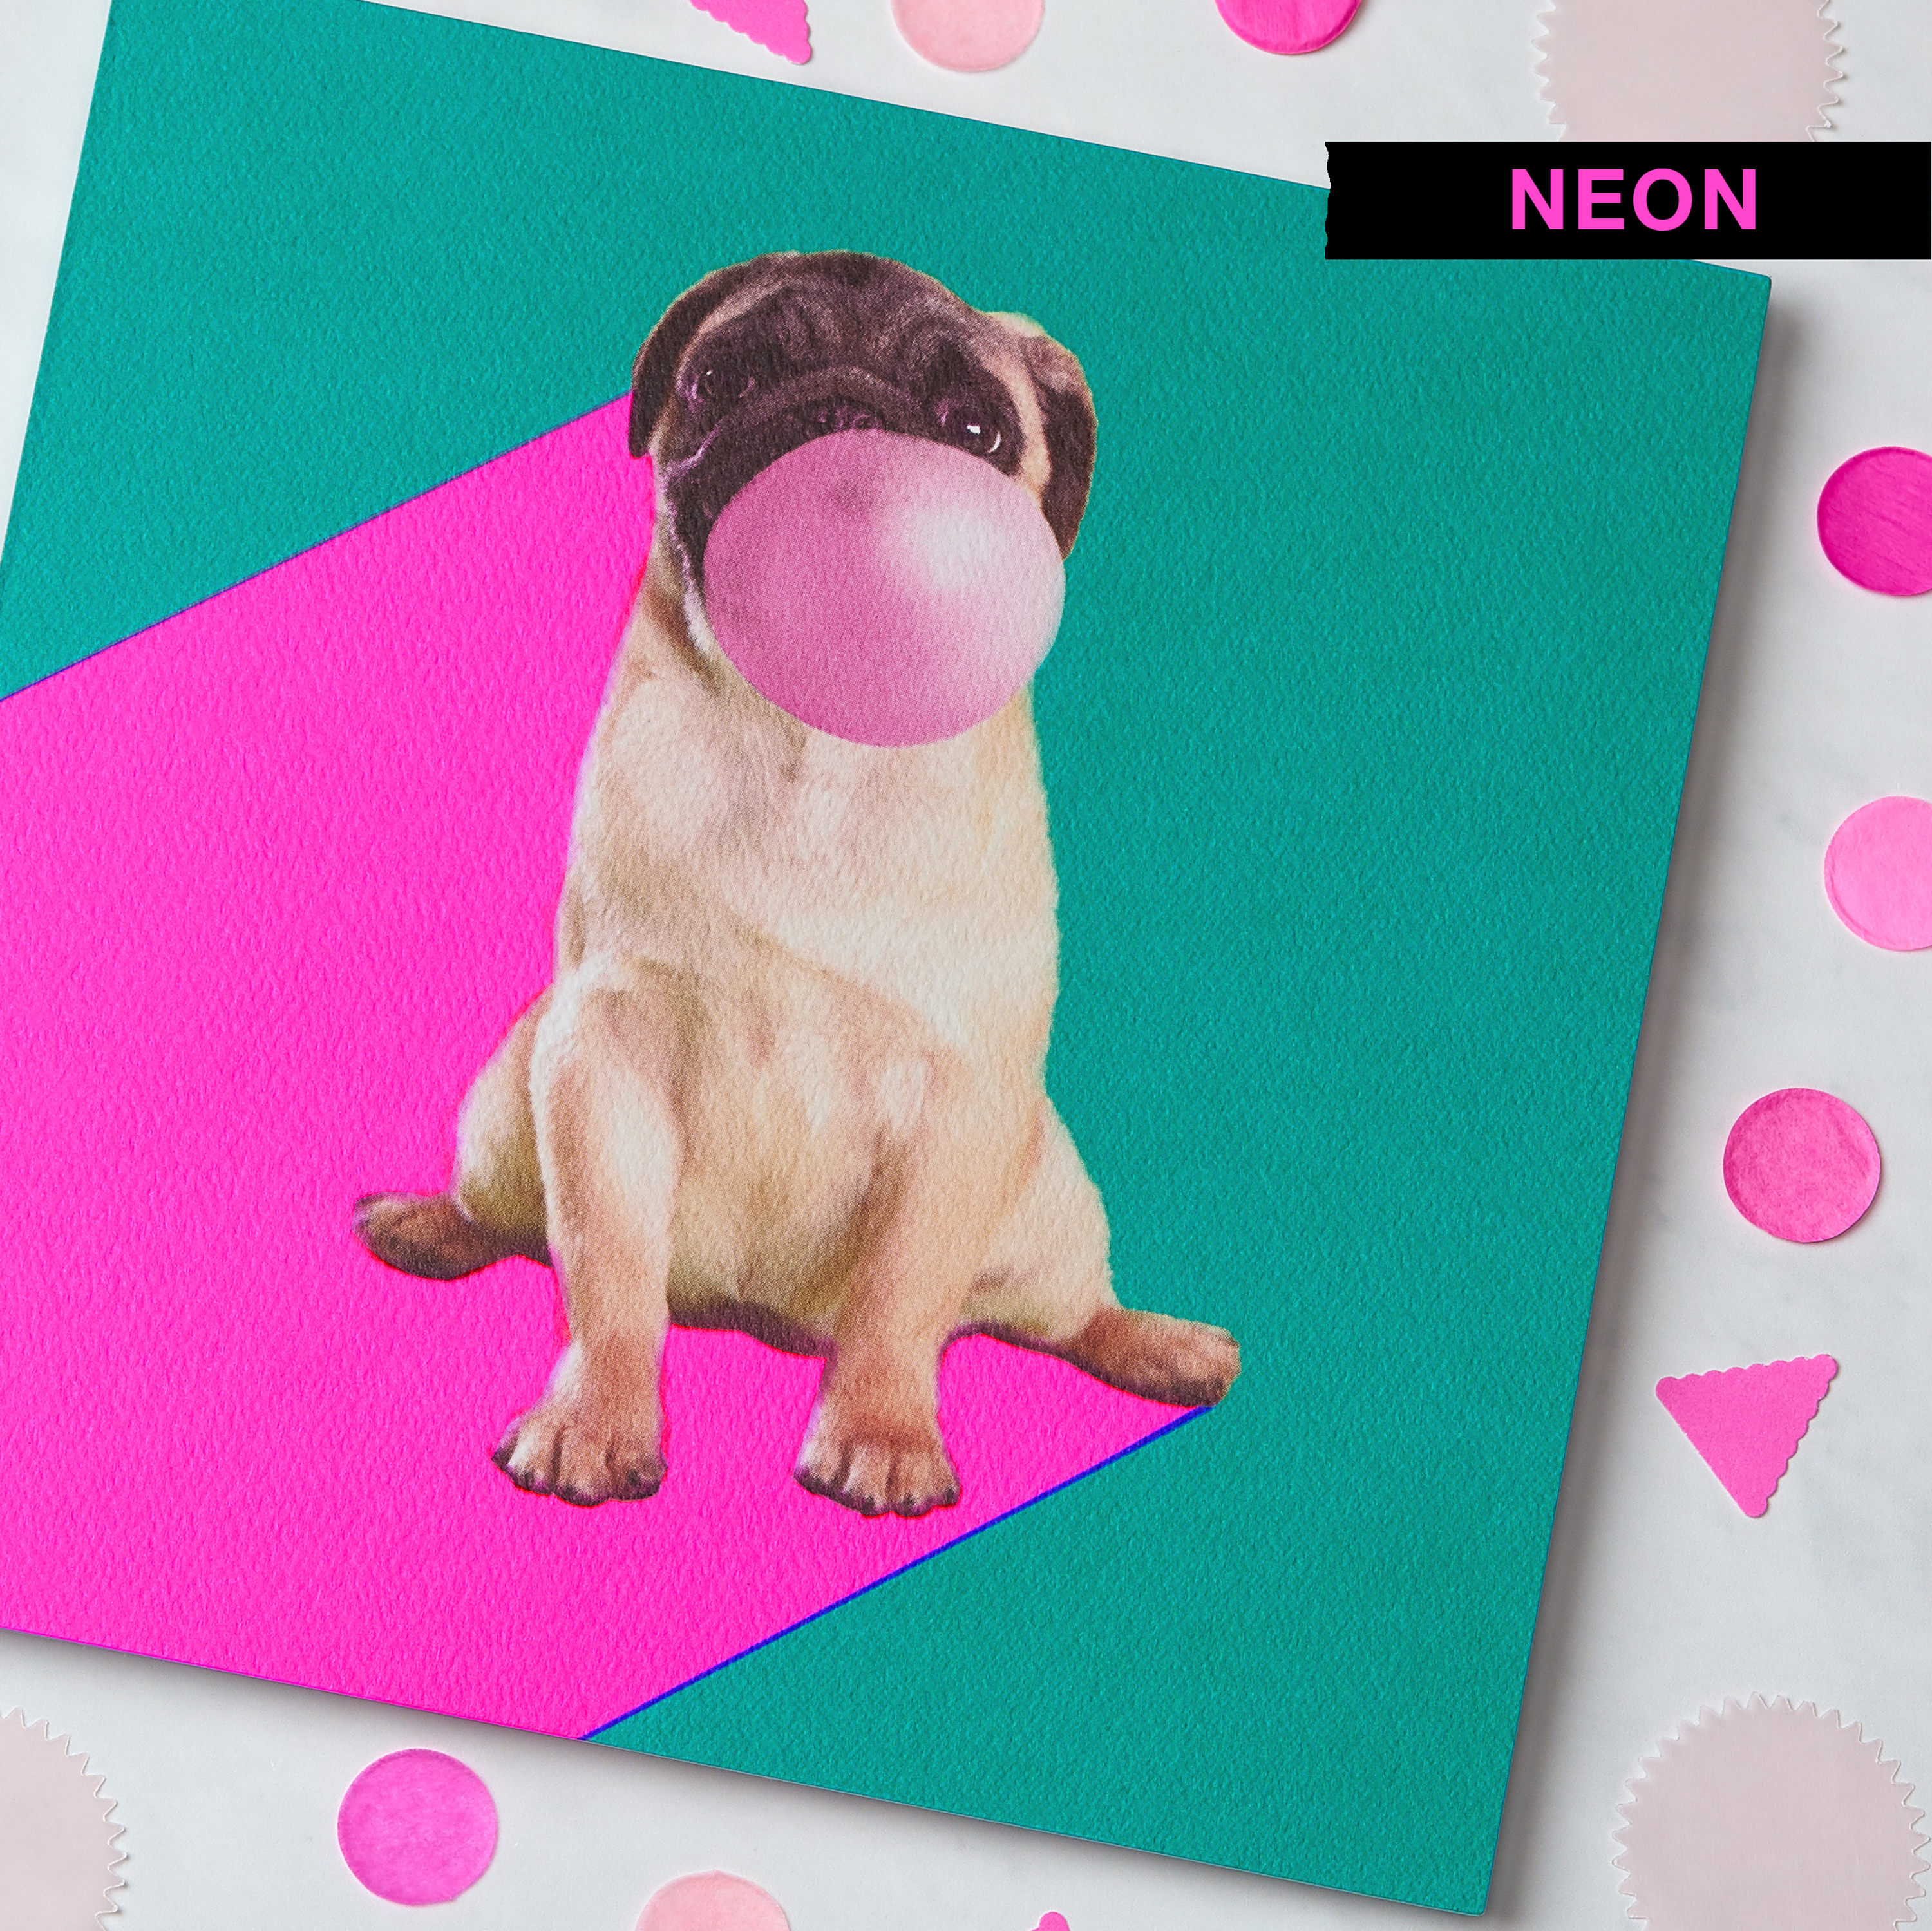 Pug Blank Card - Birthday, Friendship, Thinking of You image